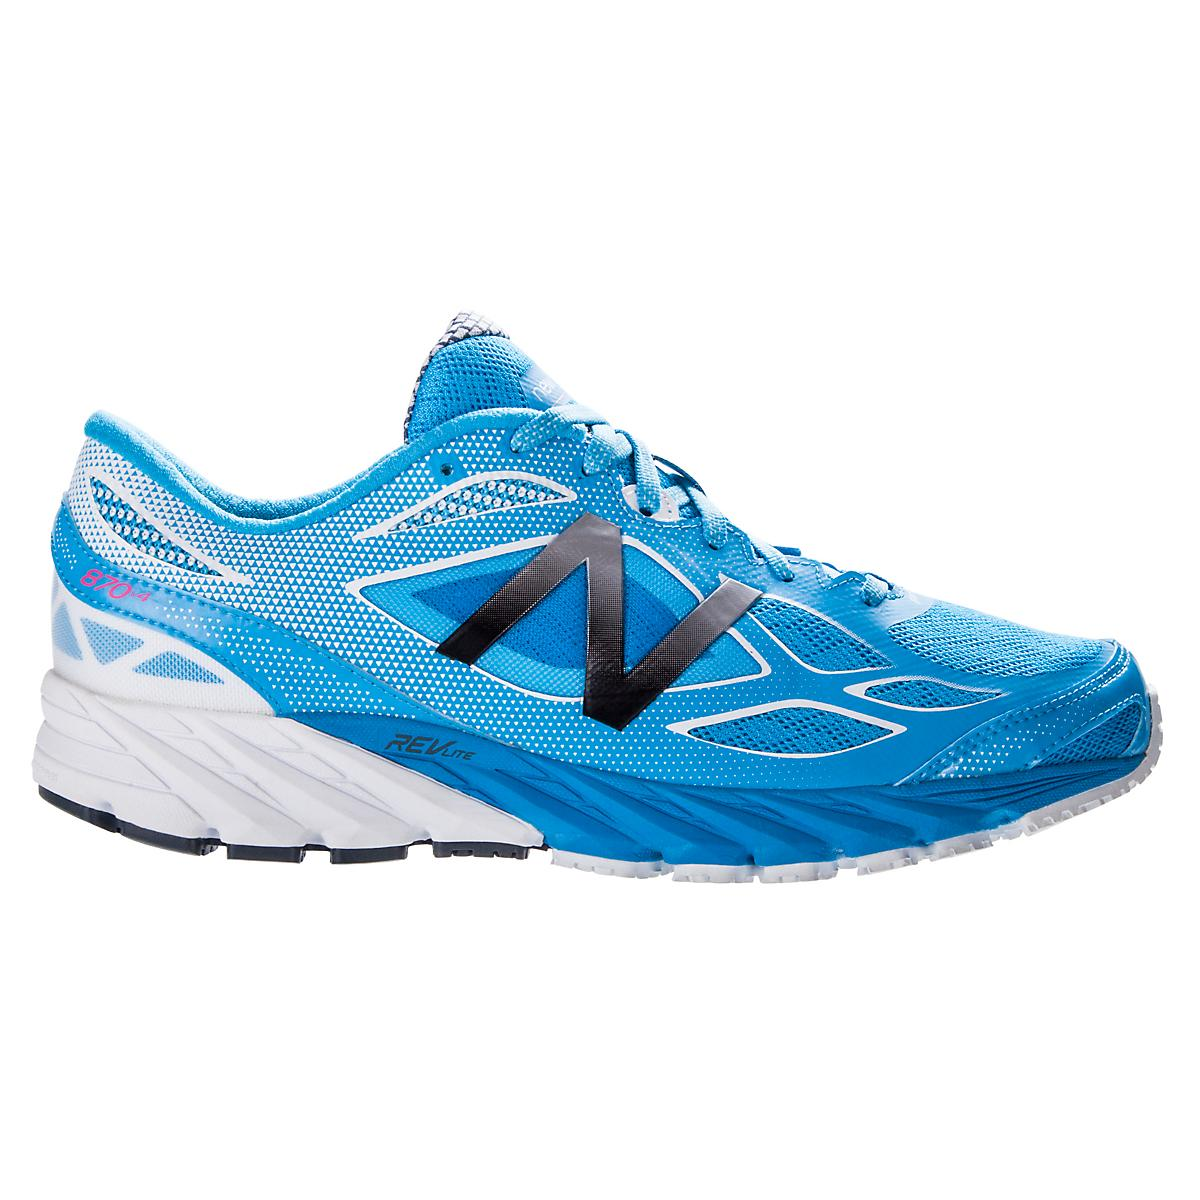 3f65f47064fb ... discount womens new balance 870v4 running shoe at road runner sports  e8aef 27411